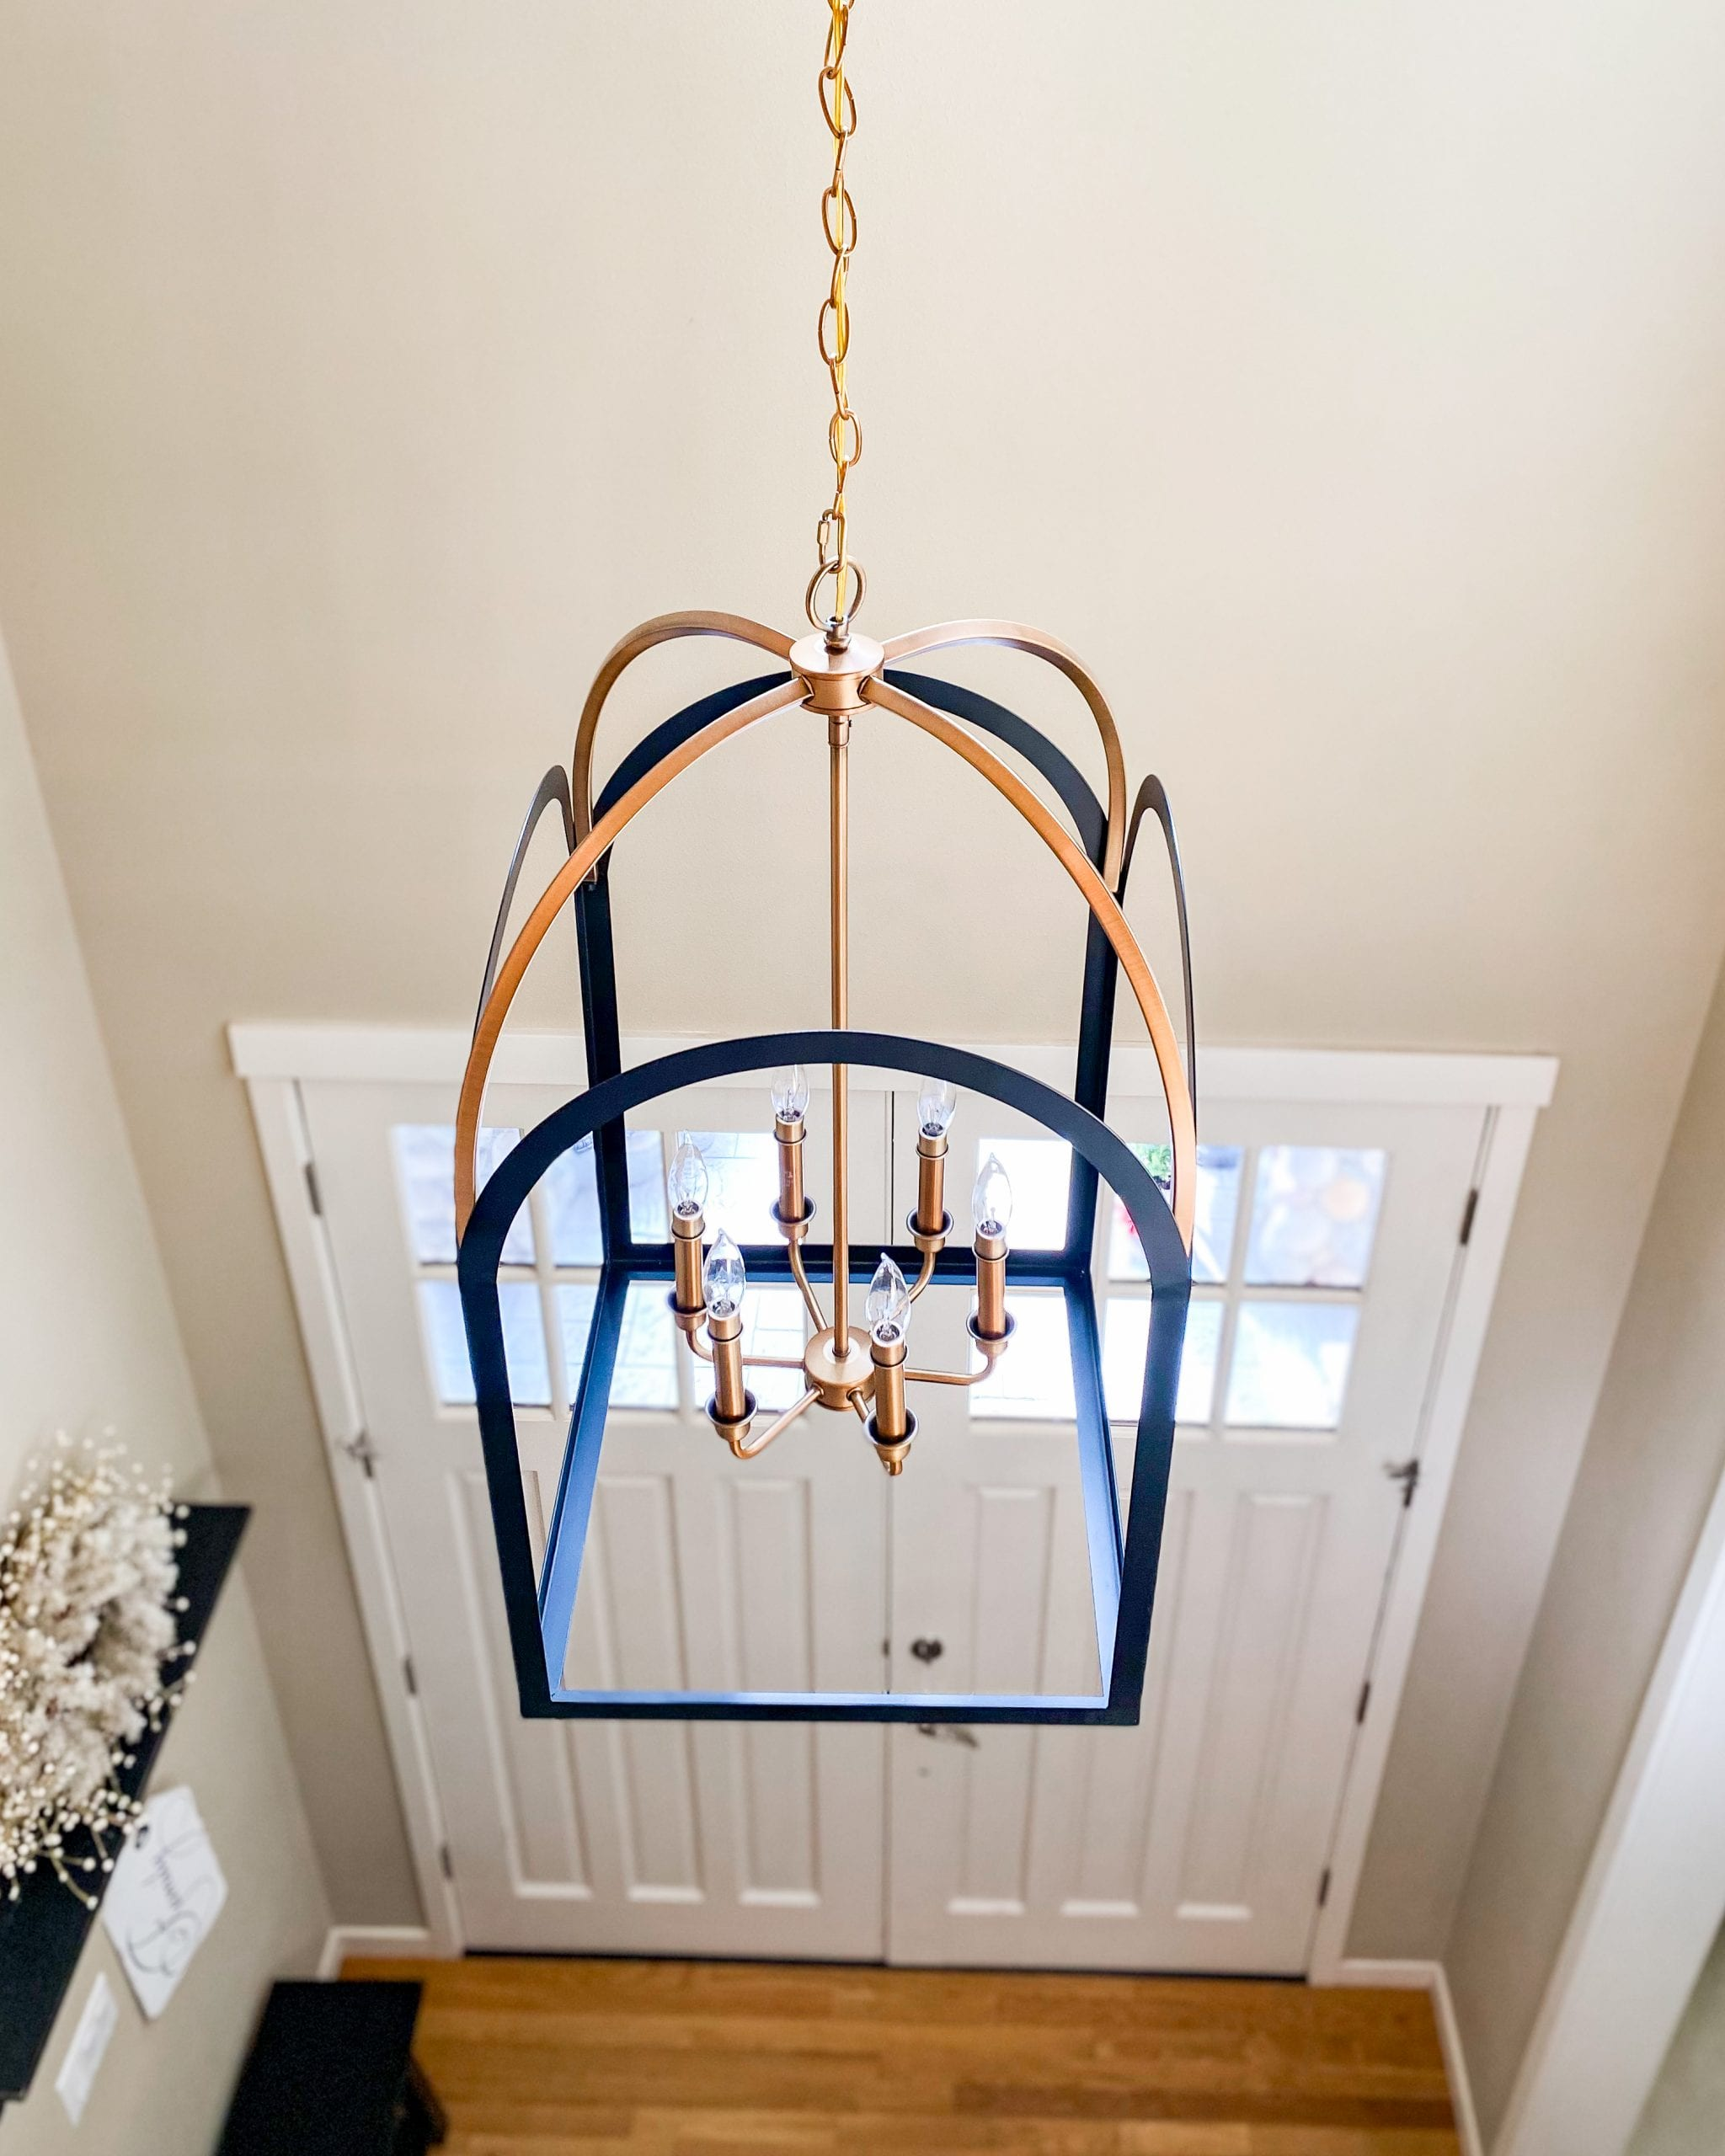 henrco foyer penant light, Updating Lights In Your Home